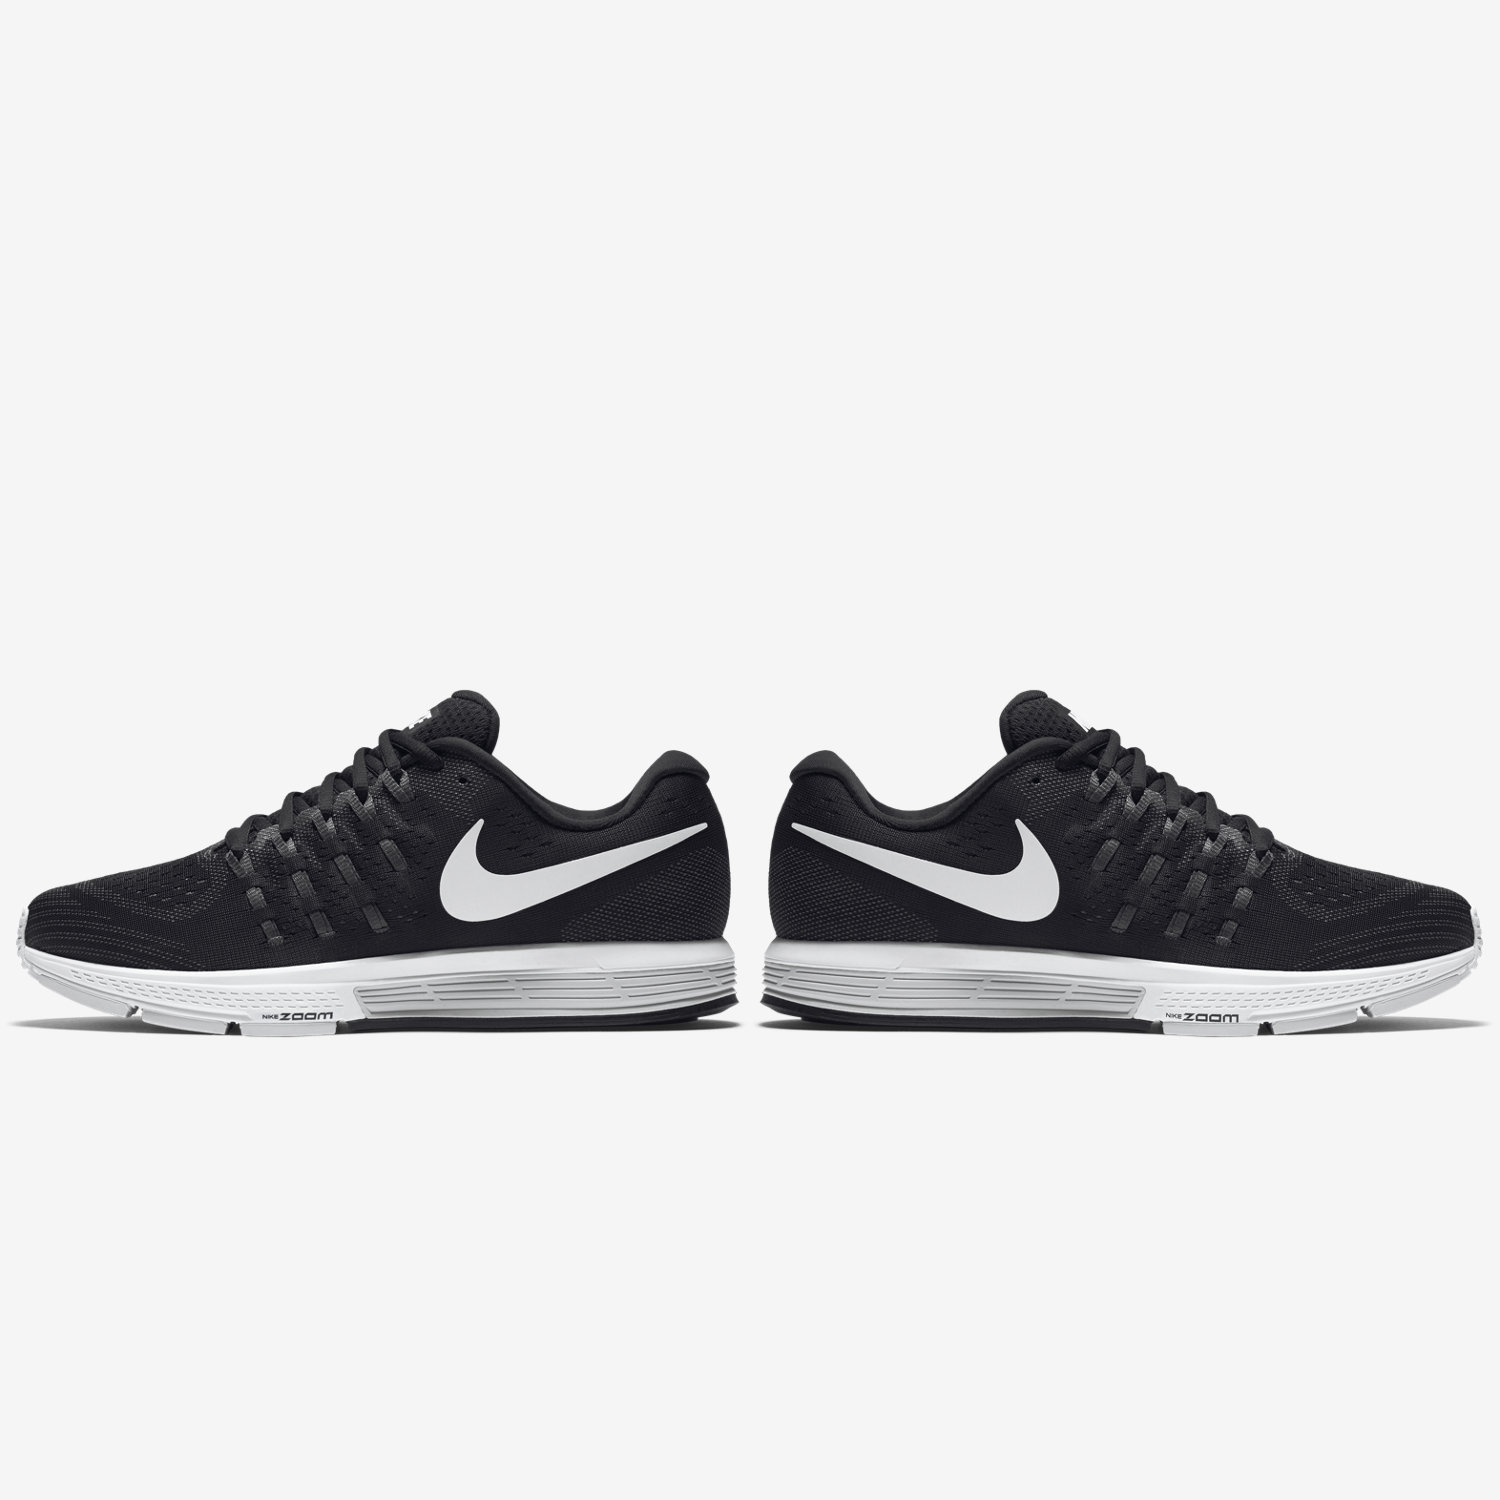 Men's Gym & Training Shoes. Nike.com CA.